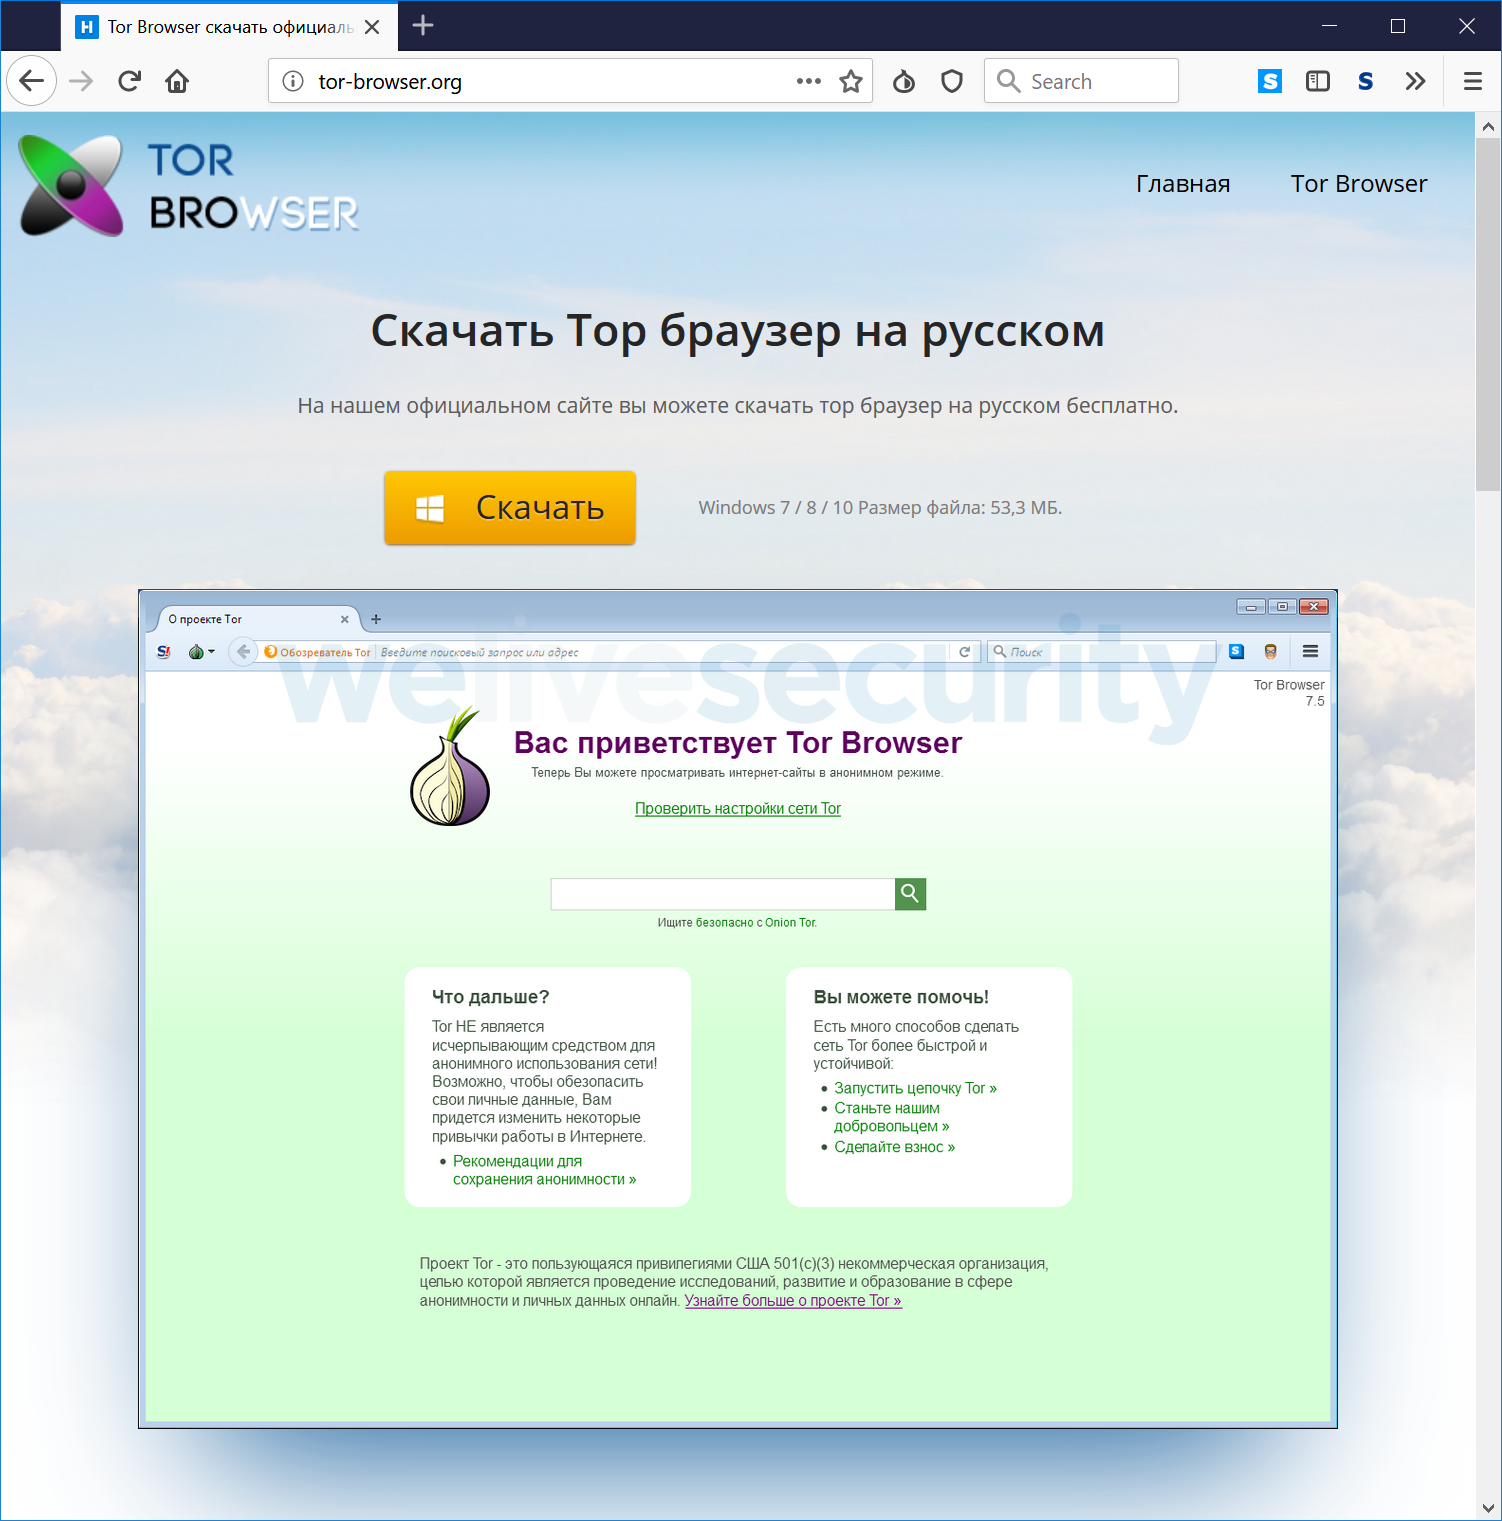 видео через tor browser gydra